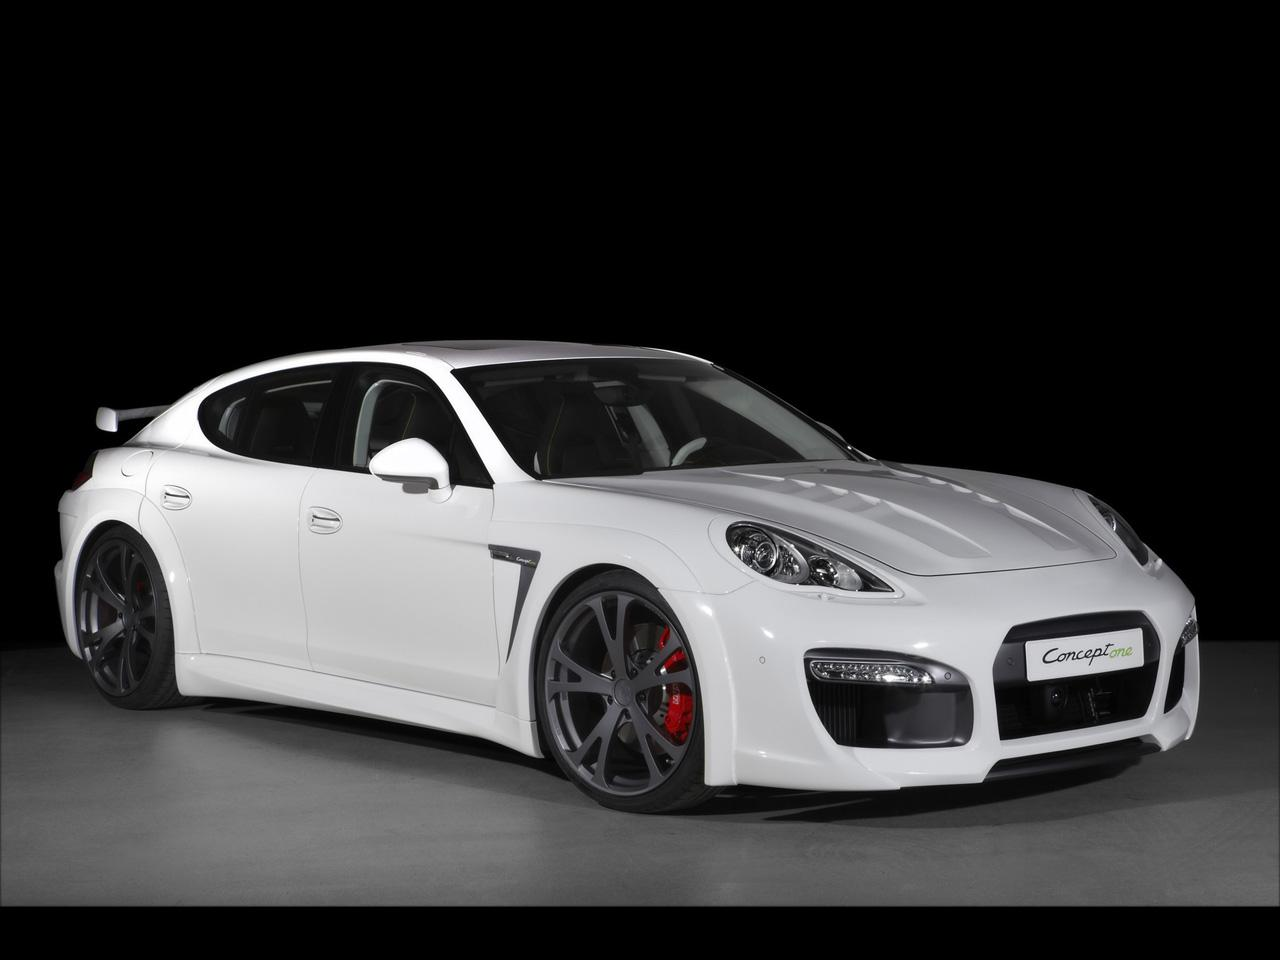 2010 TechArt Porsche Panamera Concept one